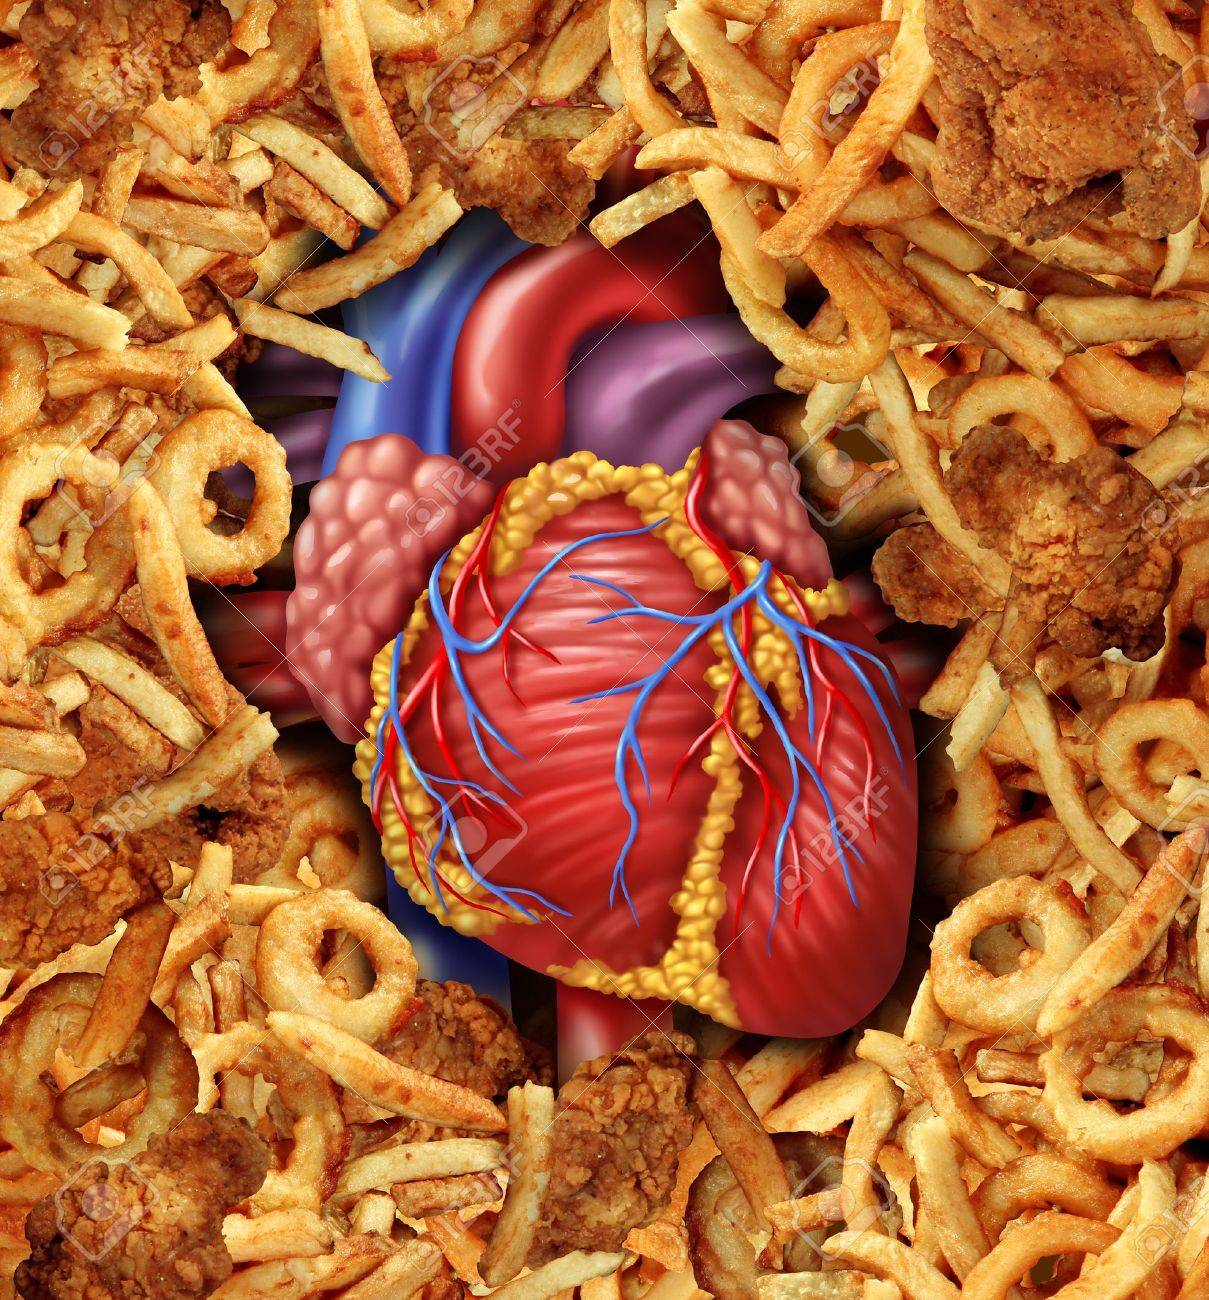 Heart Disease Food Medical Health Care Concept With A Human Heart